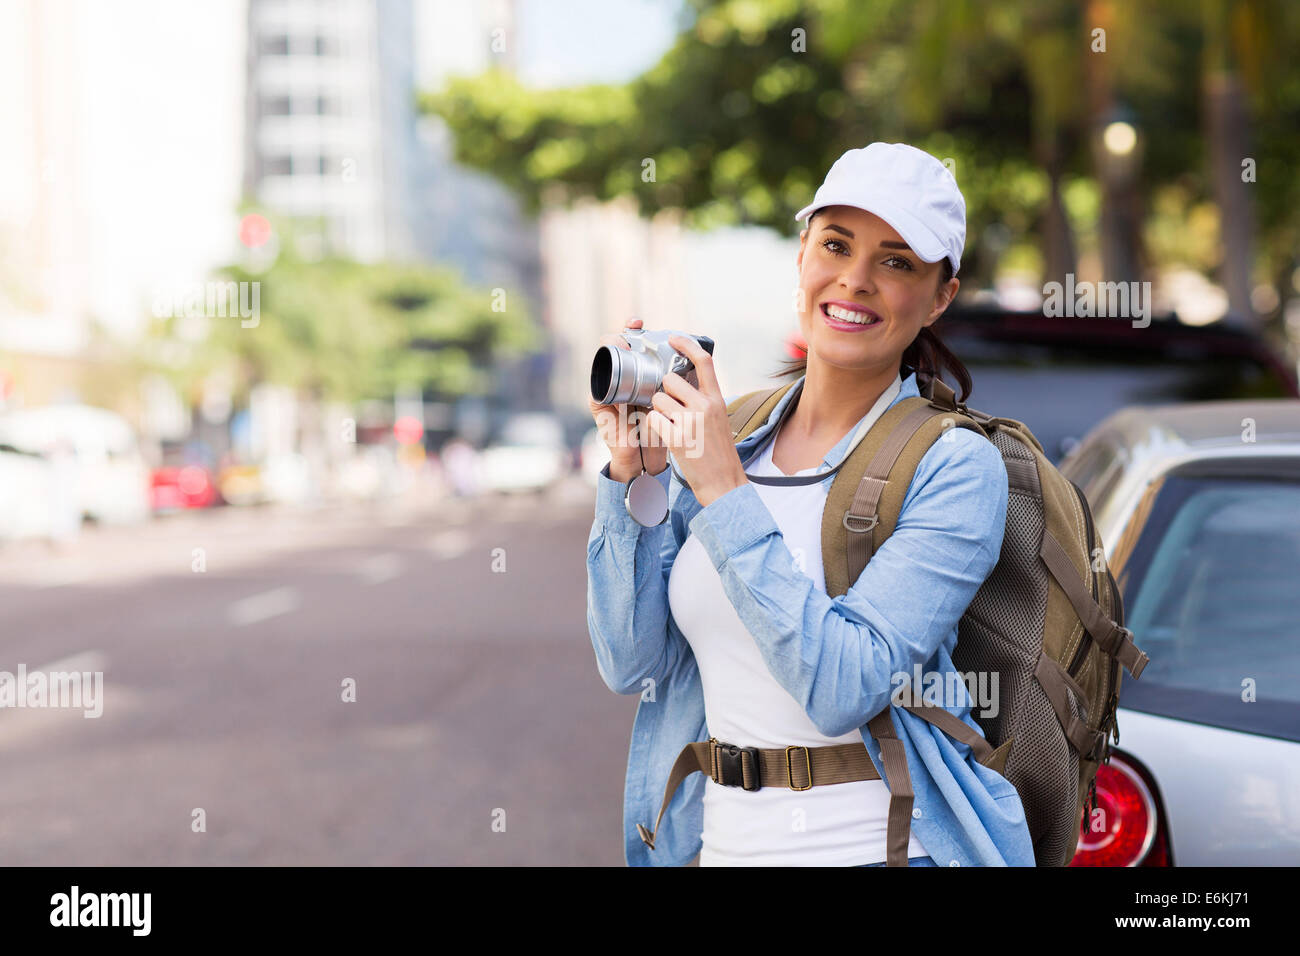 pretty tourist taking pictures with digital camera on urban street Stock Photo